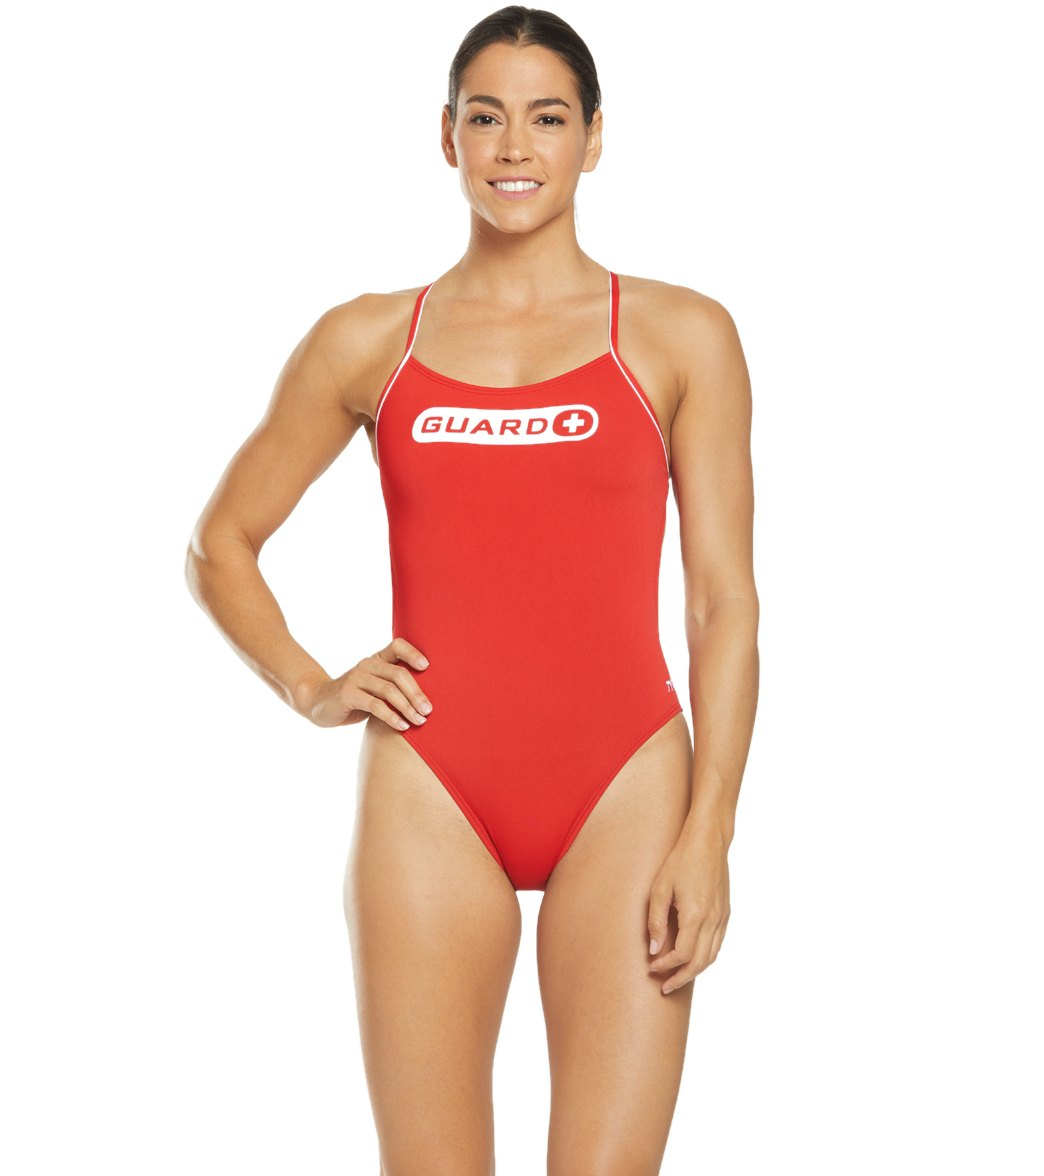 d2332c2efad0b TYR Women s Guard Cutoutfit One Piece Swimsuit at SwimOutlet.com - Free  Shipping